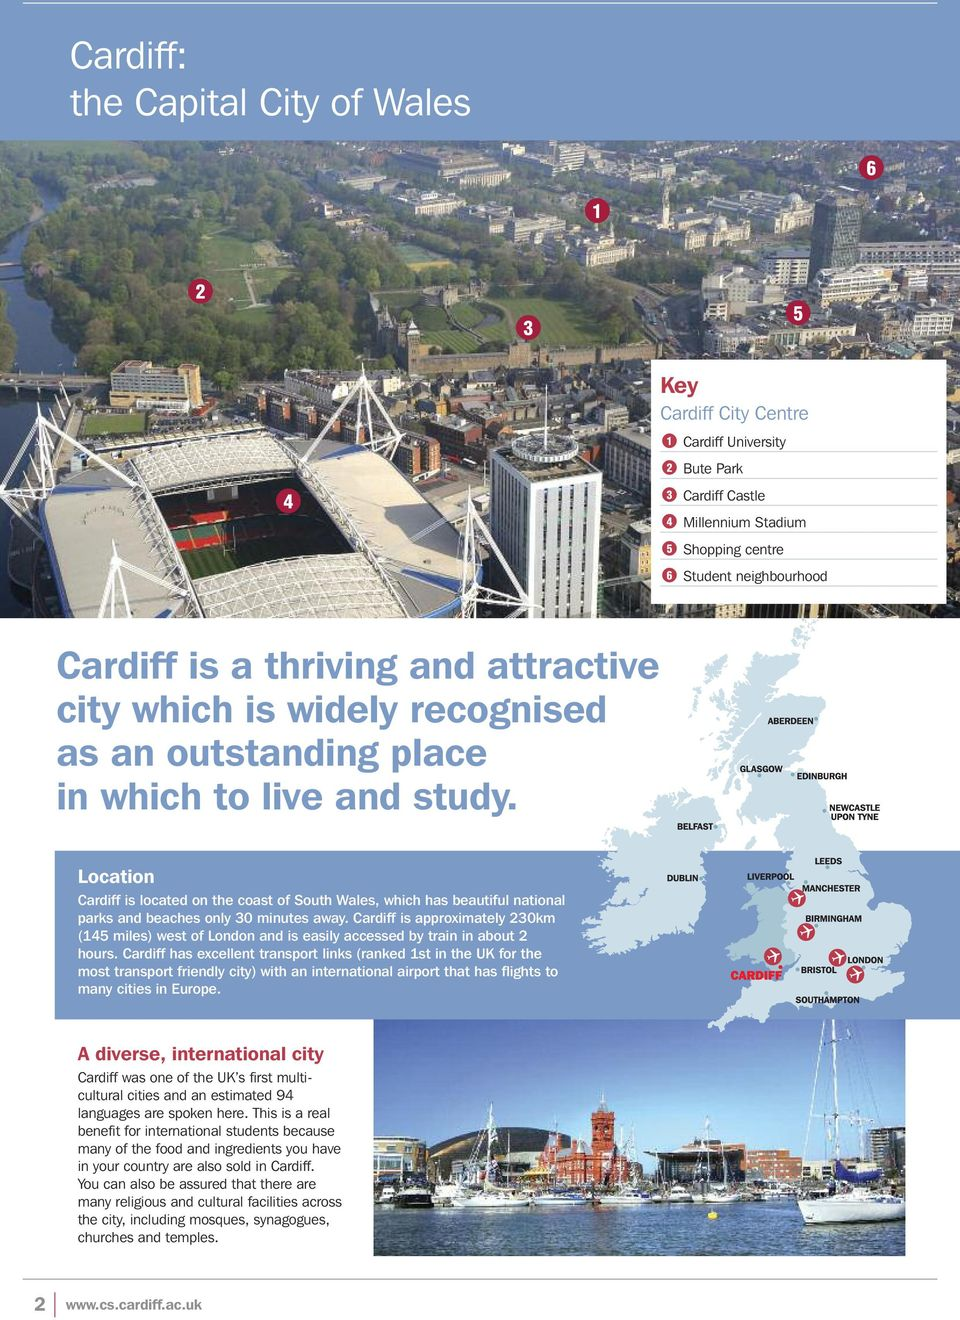 Location Cardiff is located on the coast of South Wales, which has beautiful national parks and beaches only 30 minutes away.